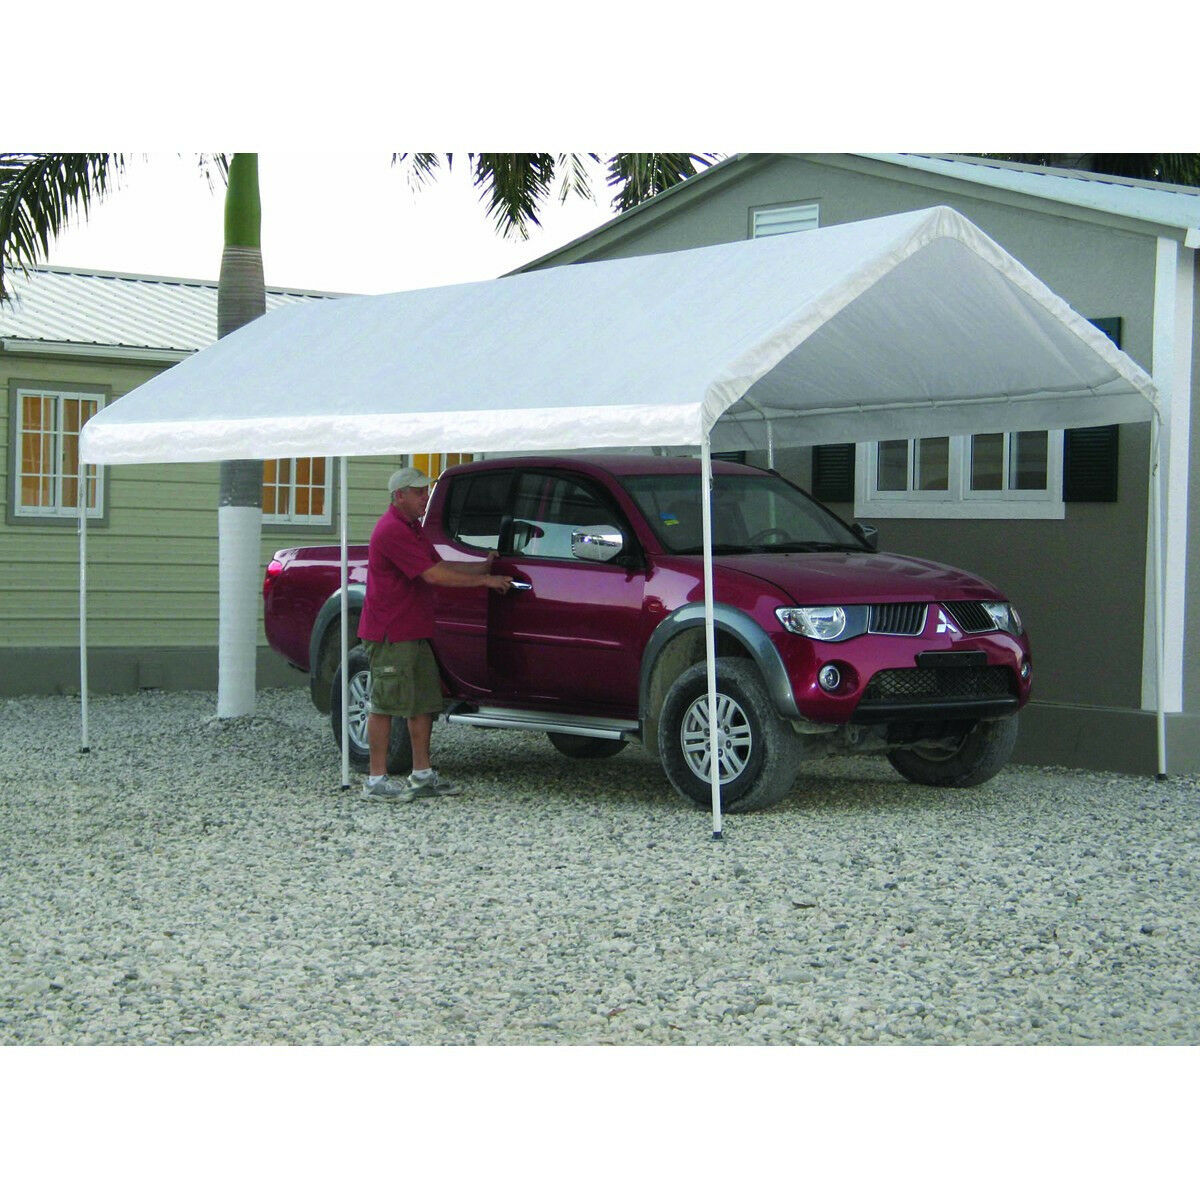 Awnings For Cars : Shed plans tent guide